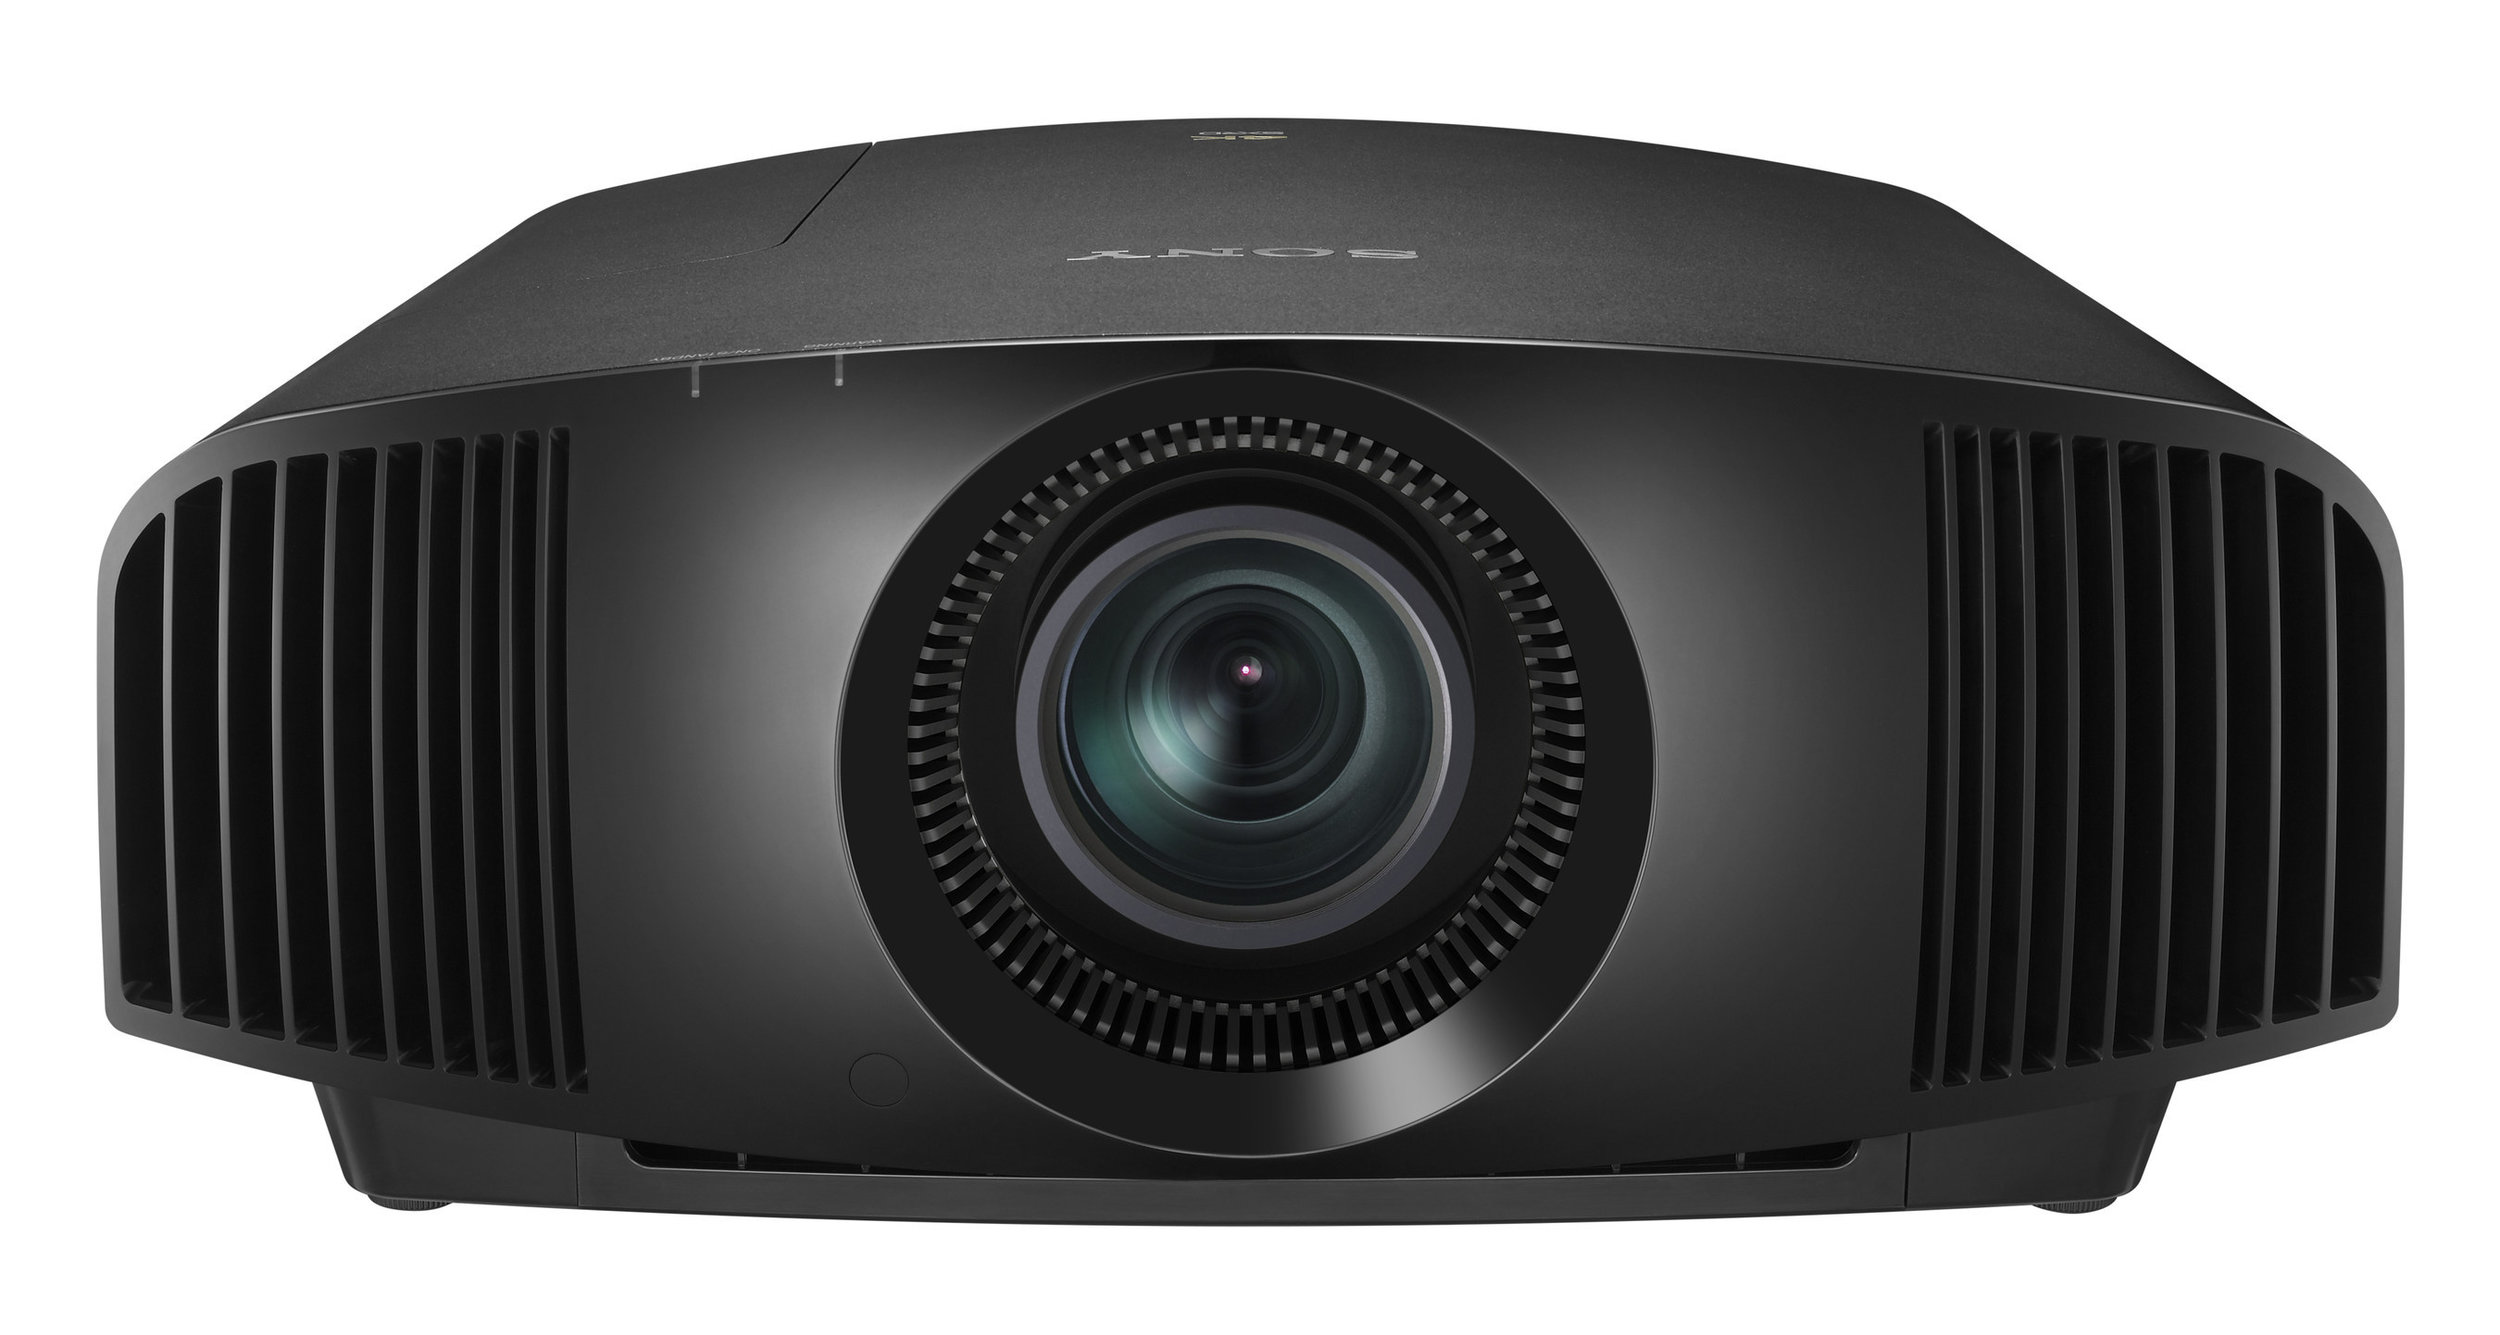 Sony VPL-VW295ES HDR Projector